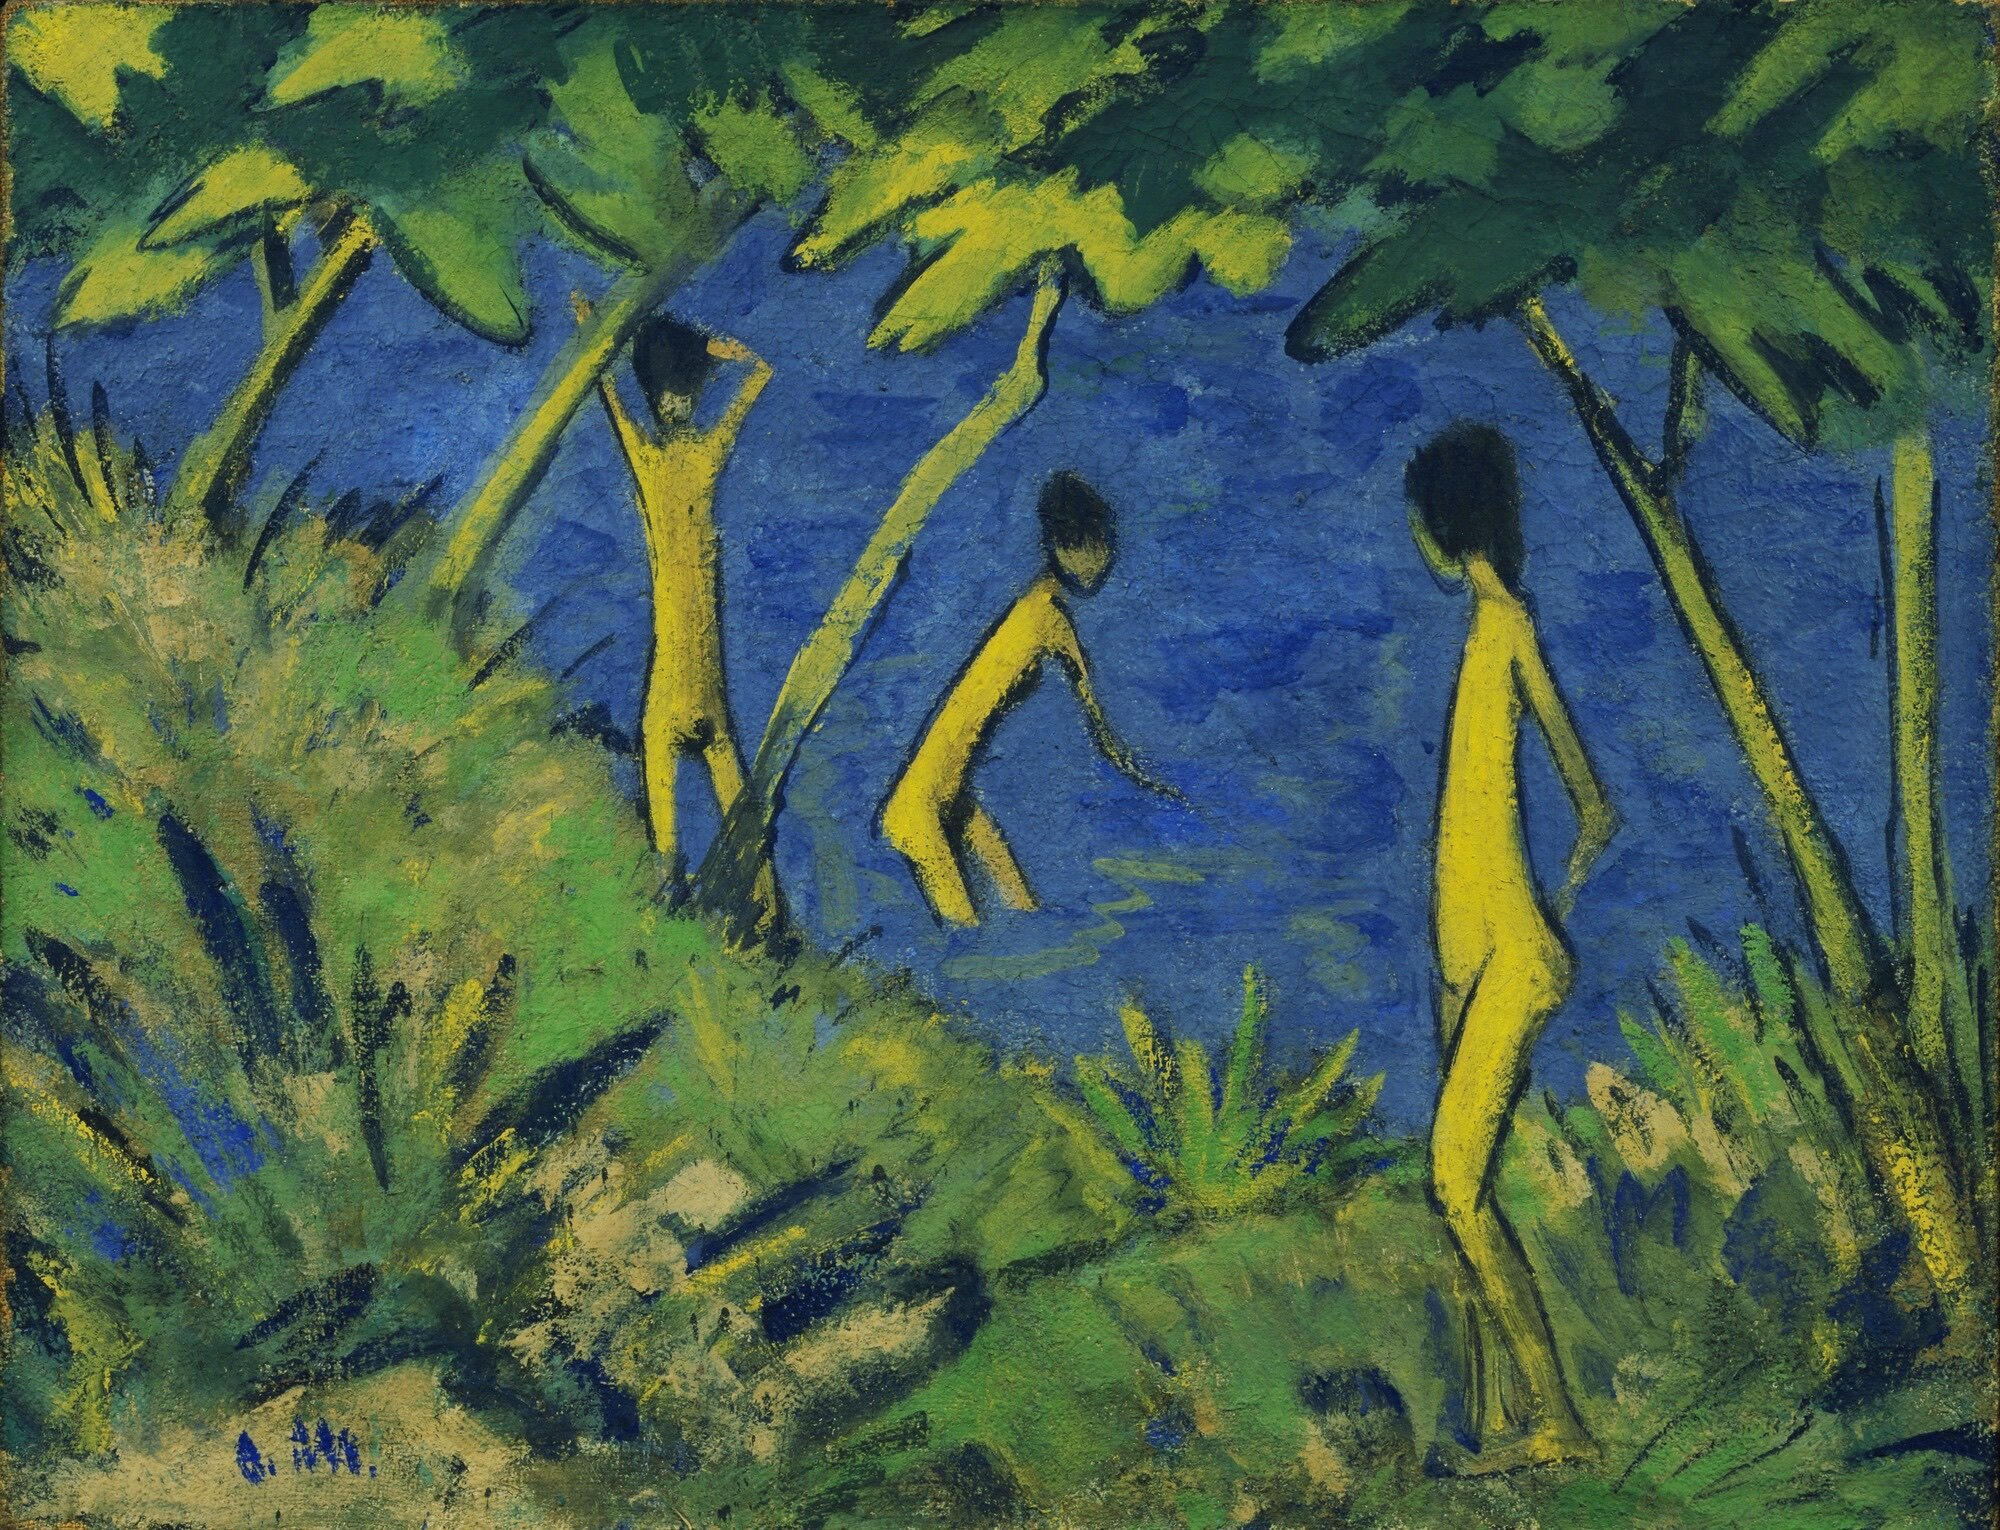 Artist   Otto Mueller   Title   Landscape with Yellow Nudes   Date   Ca. 1919   Medium   Oil on Burlap   Image at   @moma.org